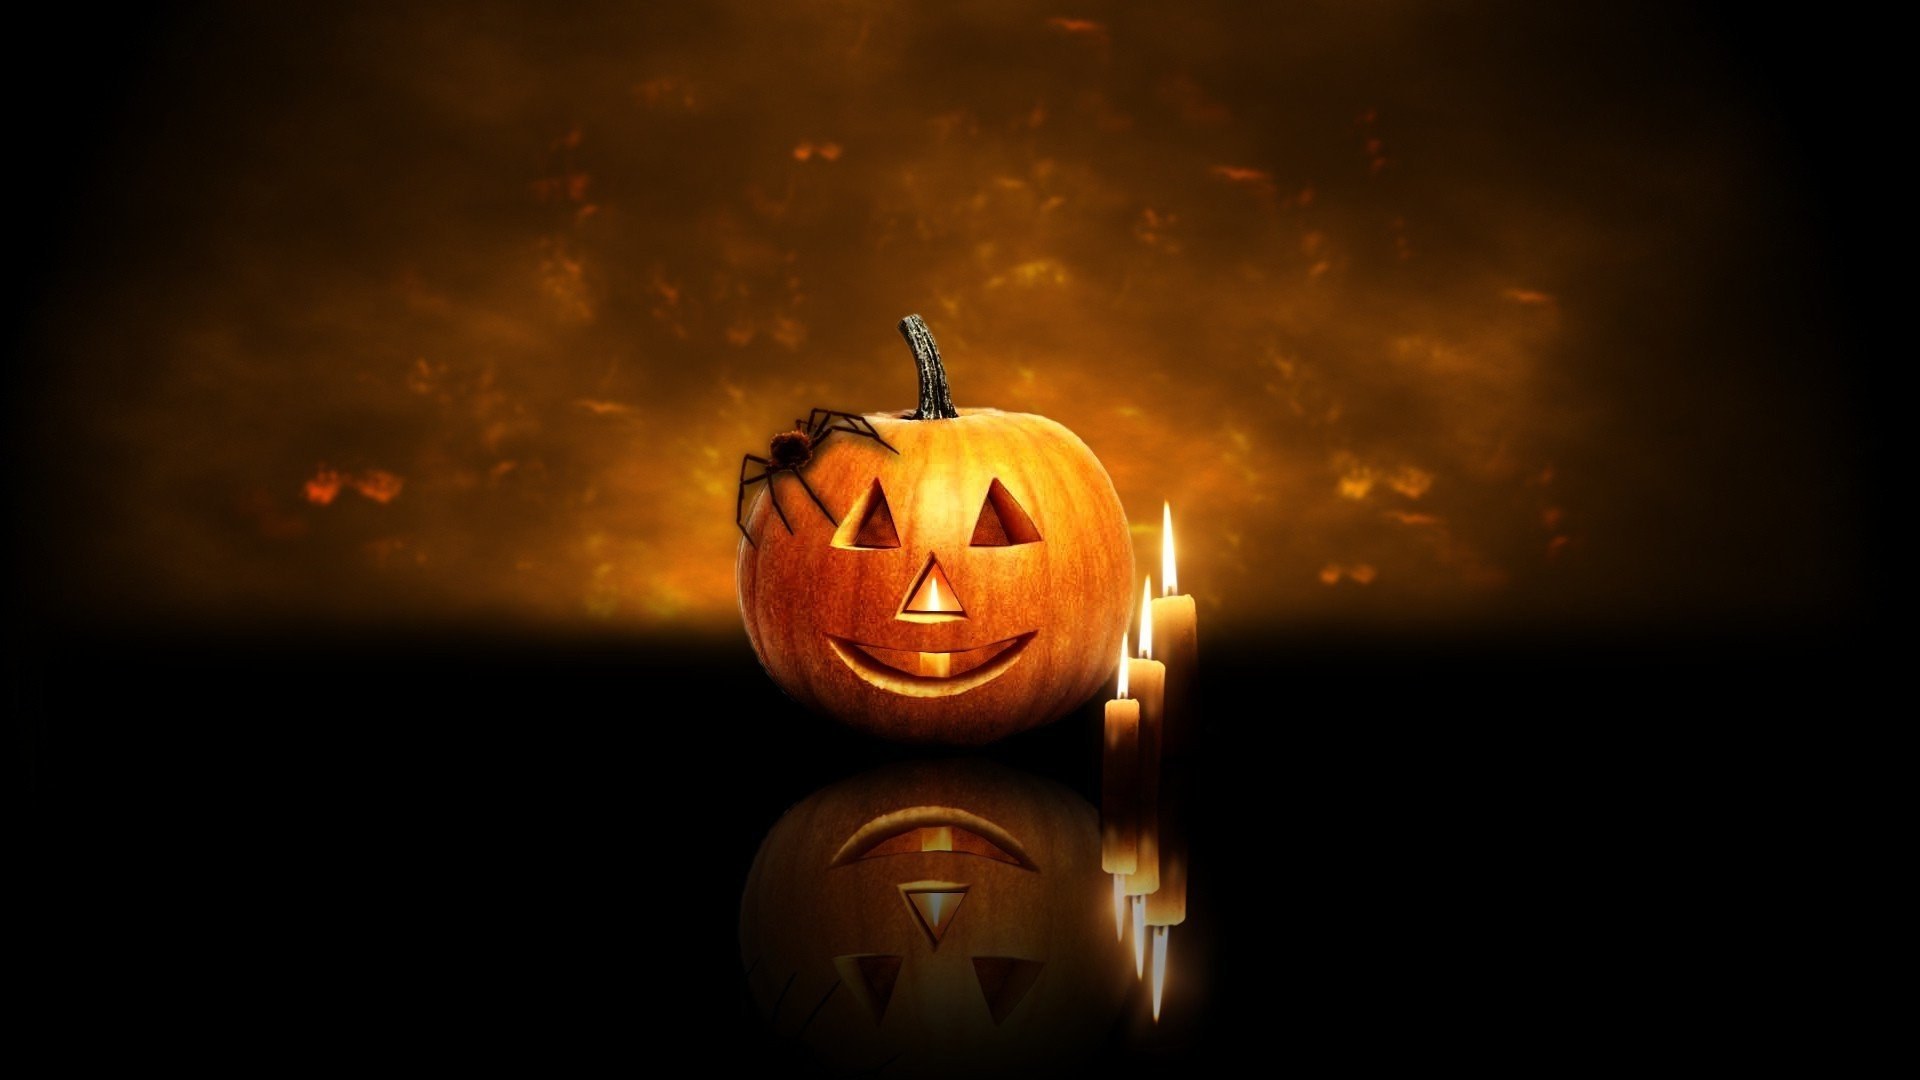 Animated Halloween Wallpaper 18573 Wallpaper Wallpaper hd 1920x1080